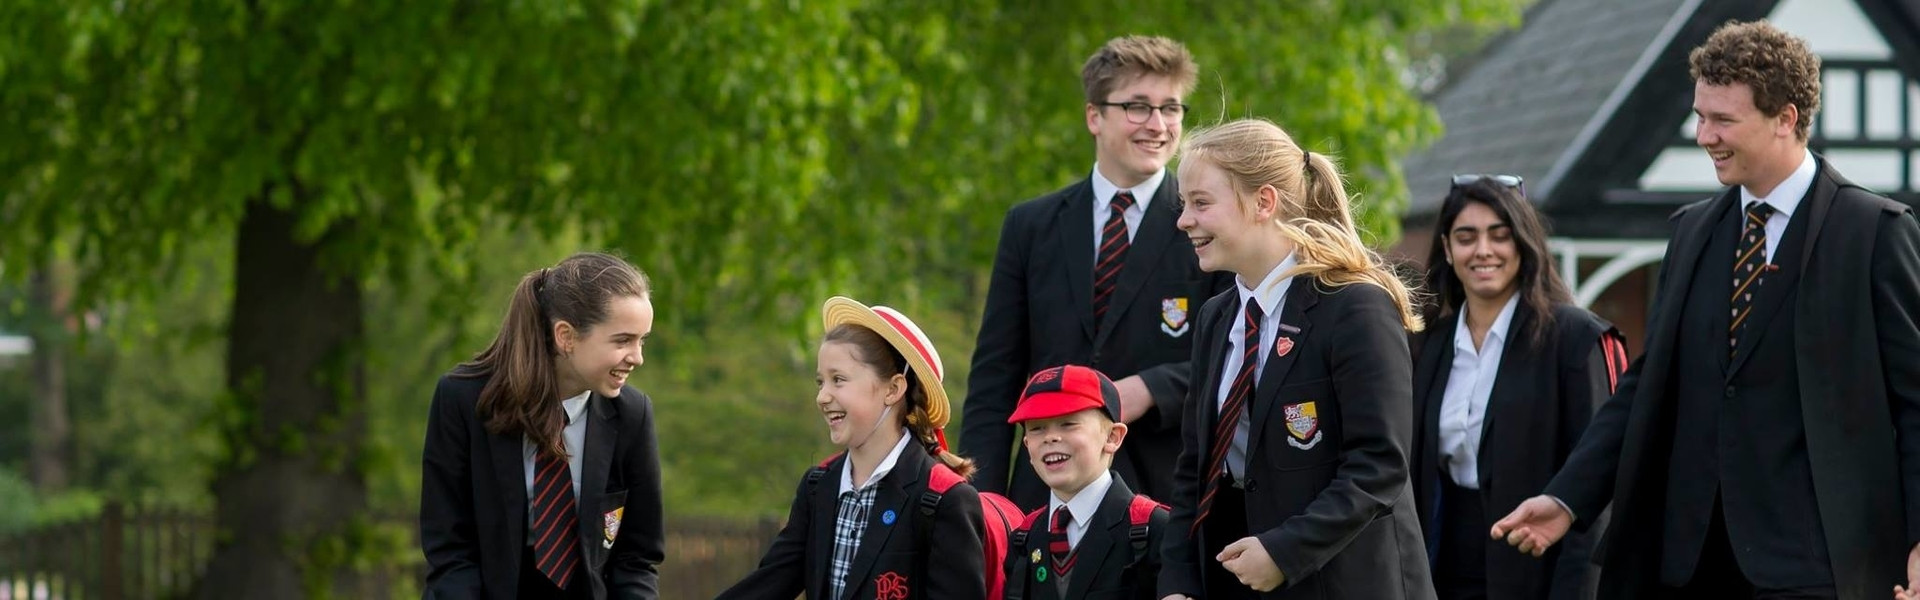 Mixed group of students at Birkenhead School